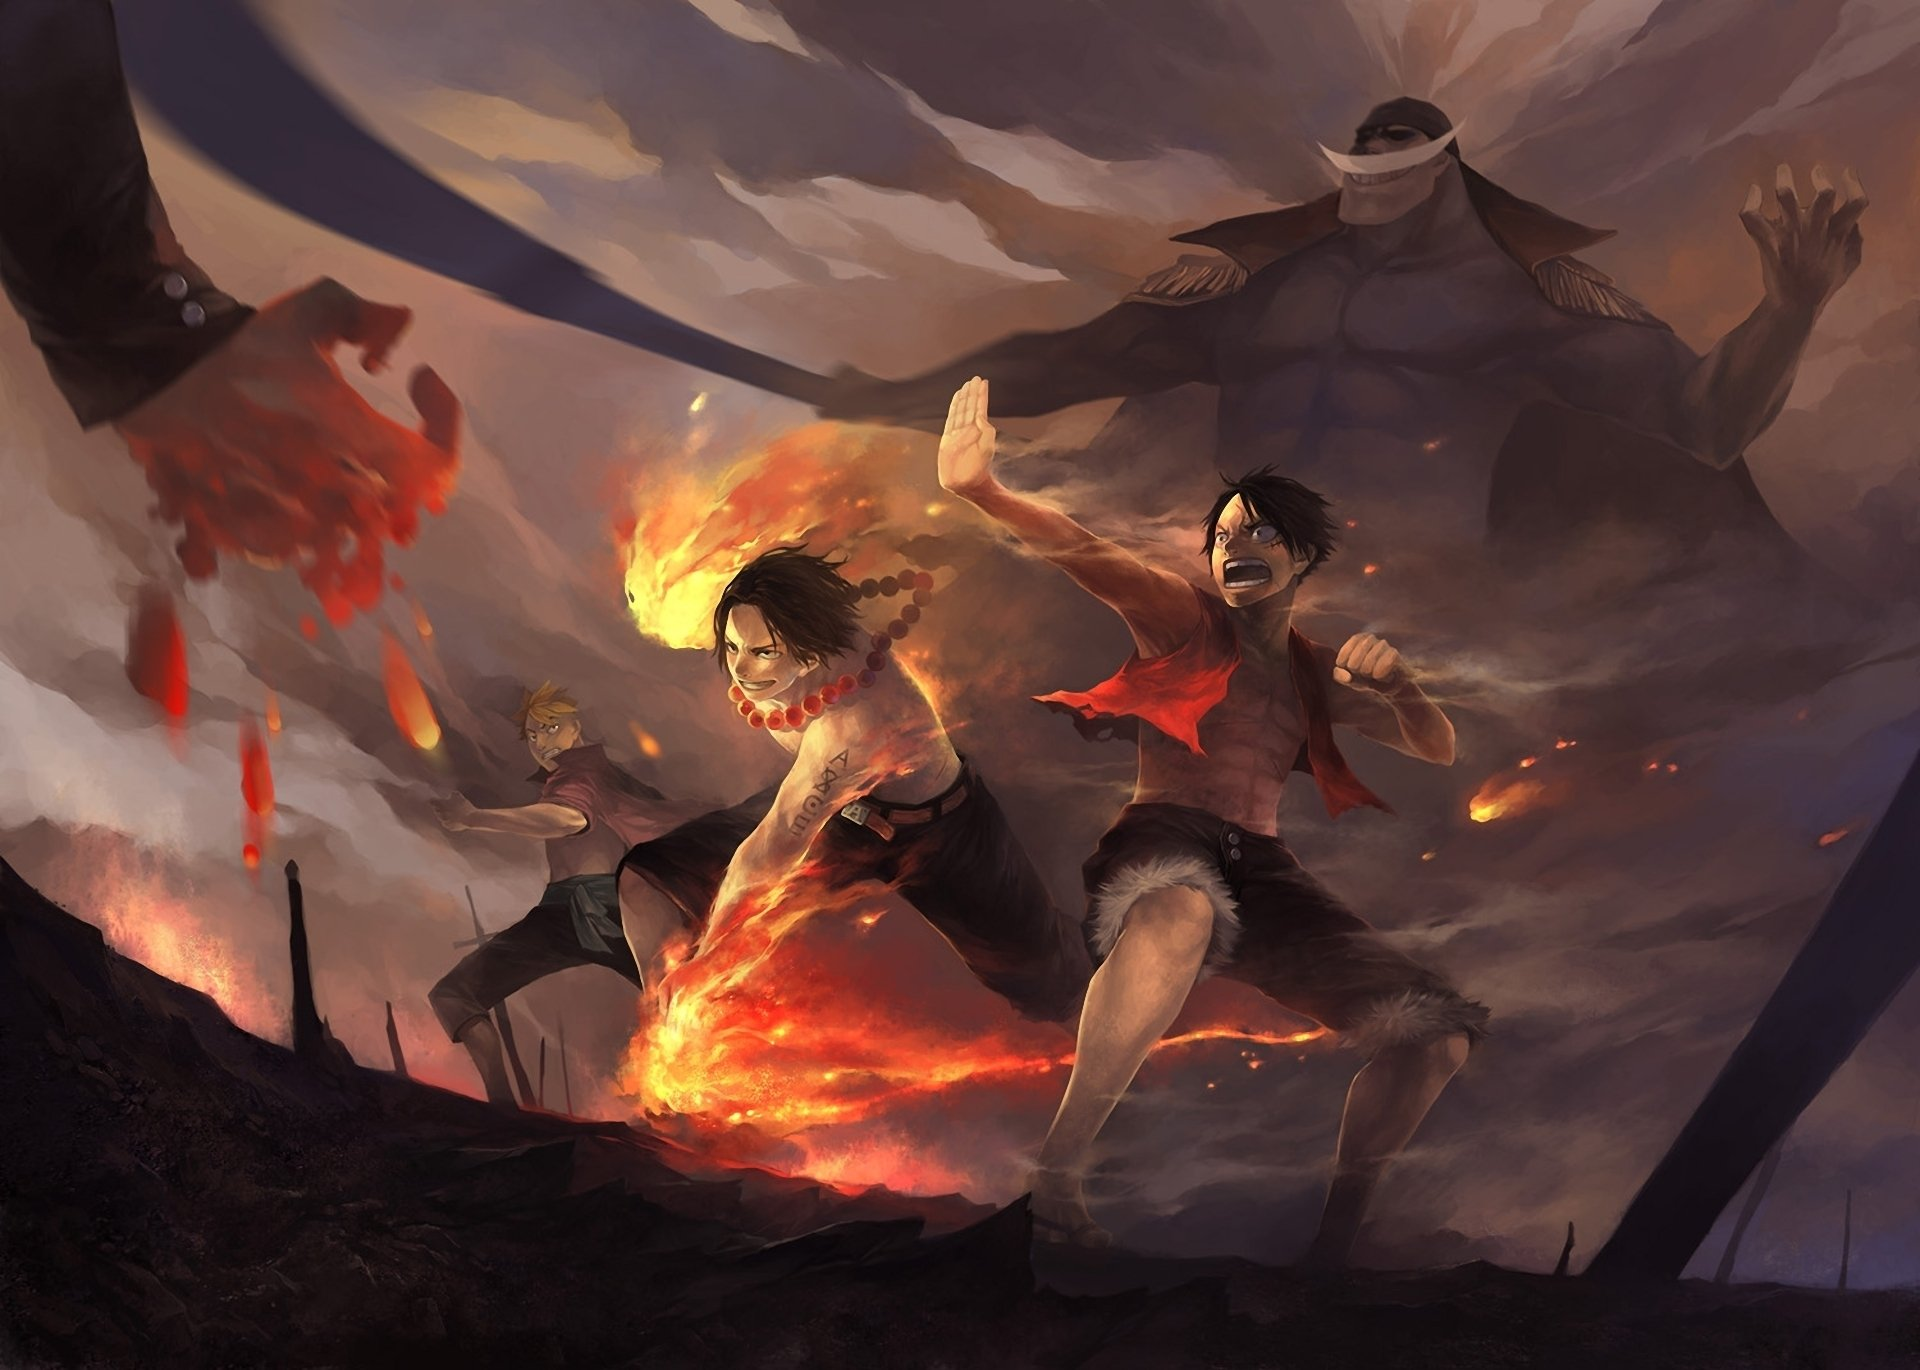 One Piece Luffy And Ace Wallpaper High Definition Is Cool Wallpapers